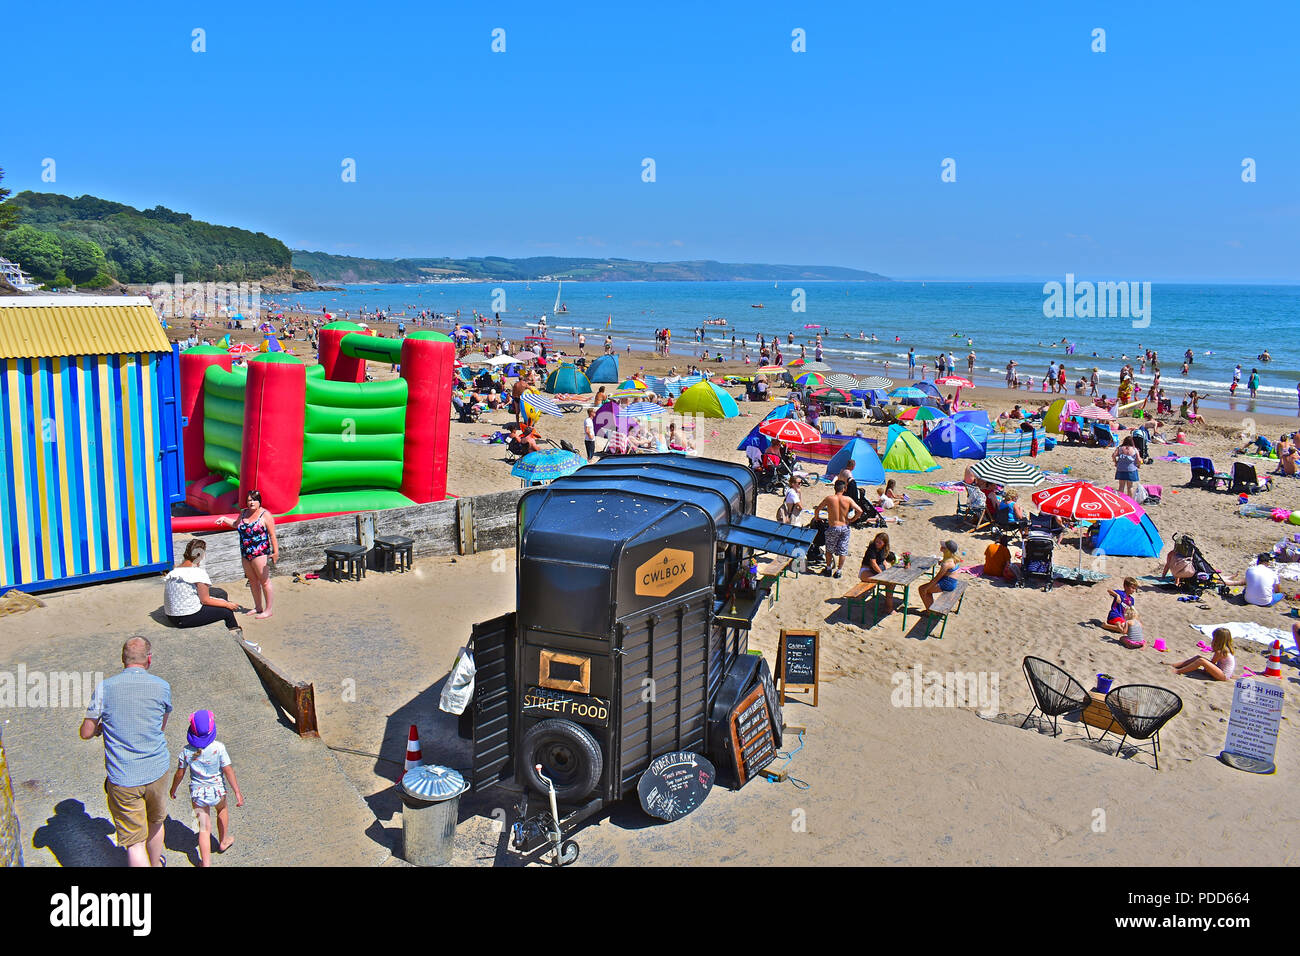 Crowded & busy summertime beach scene at Saundersfoot, Pembrokeshire, with bouncy castle and fast food outlet in foreground - Stock Image